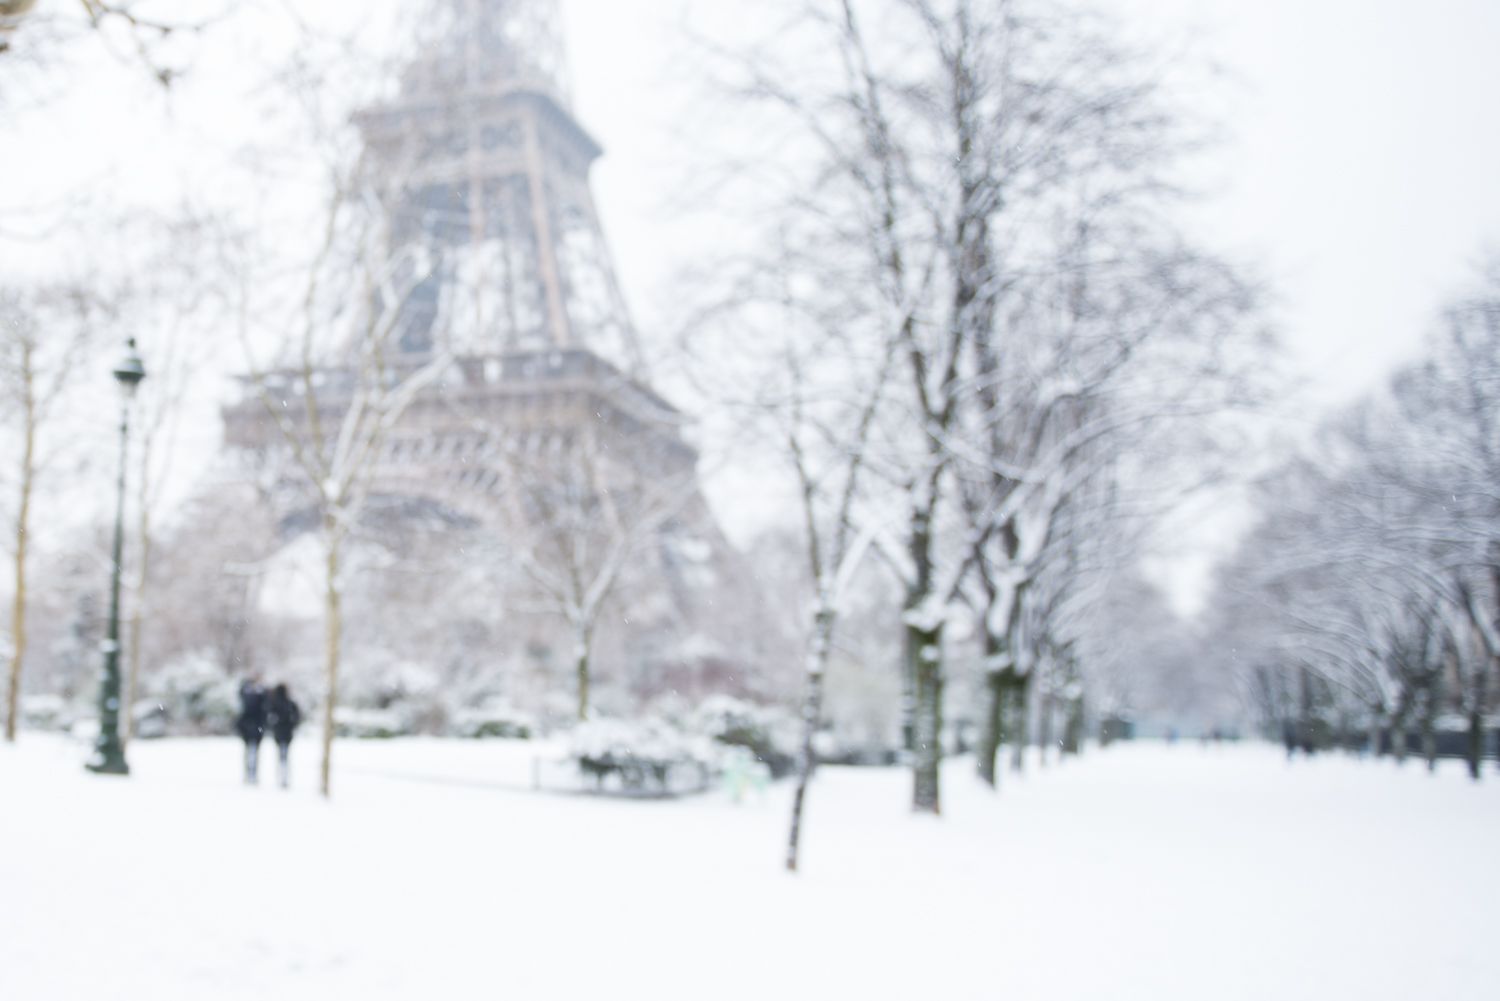 Blizzard in Paris - 5